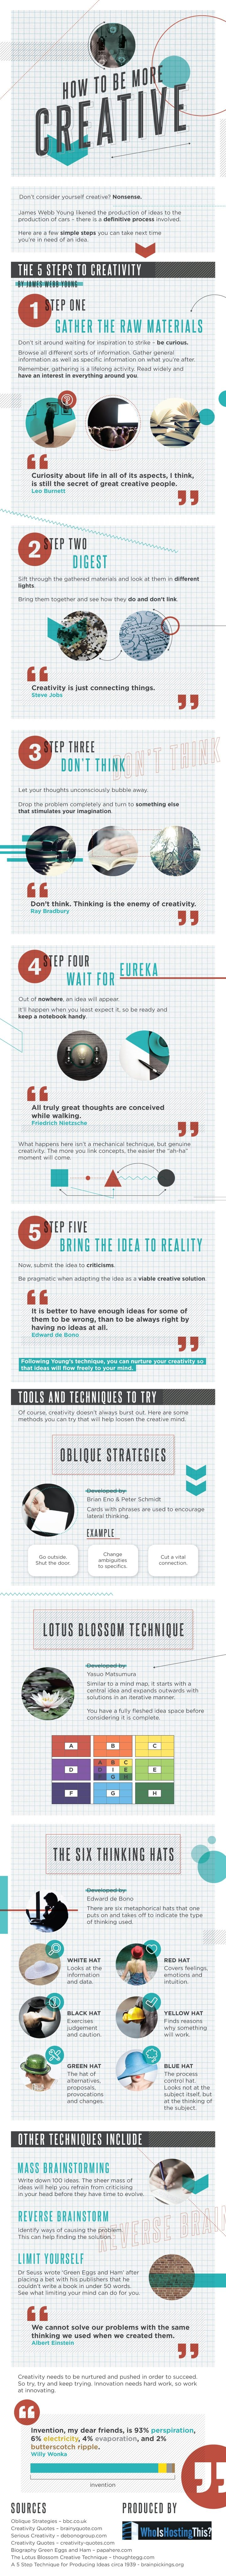 Infographic on How to stay creative